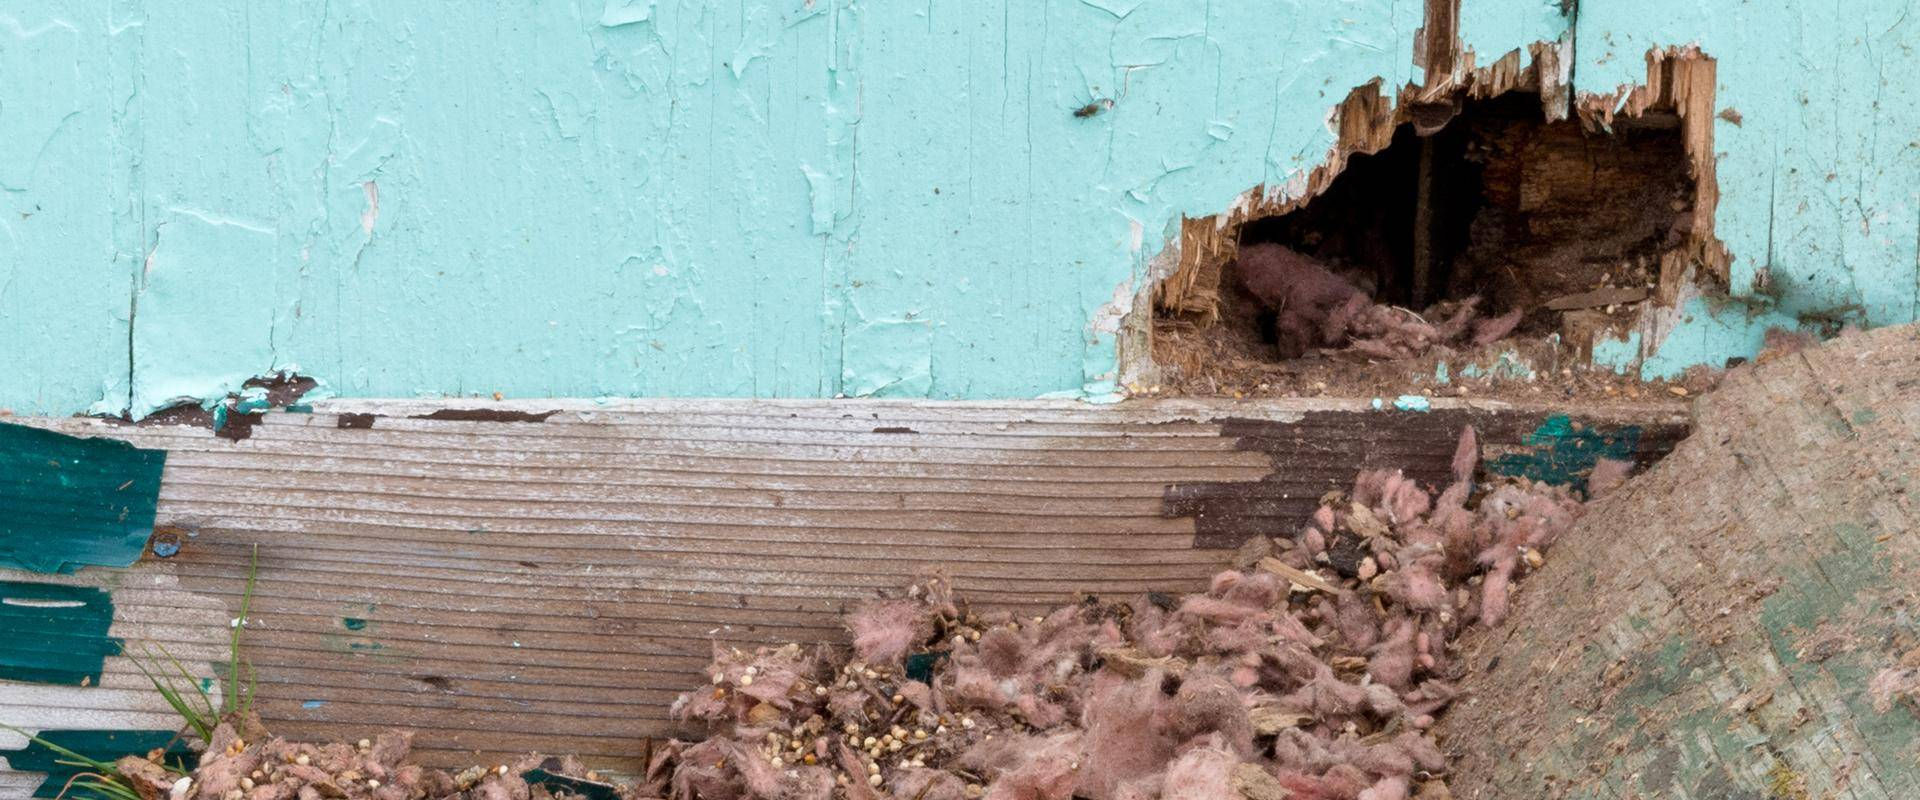 rodent hole in a wall